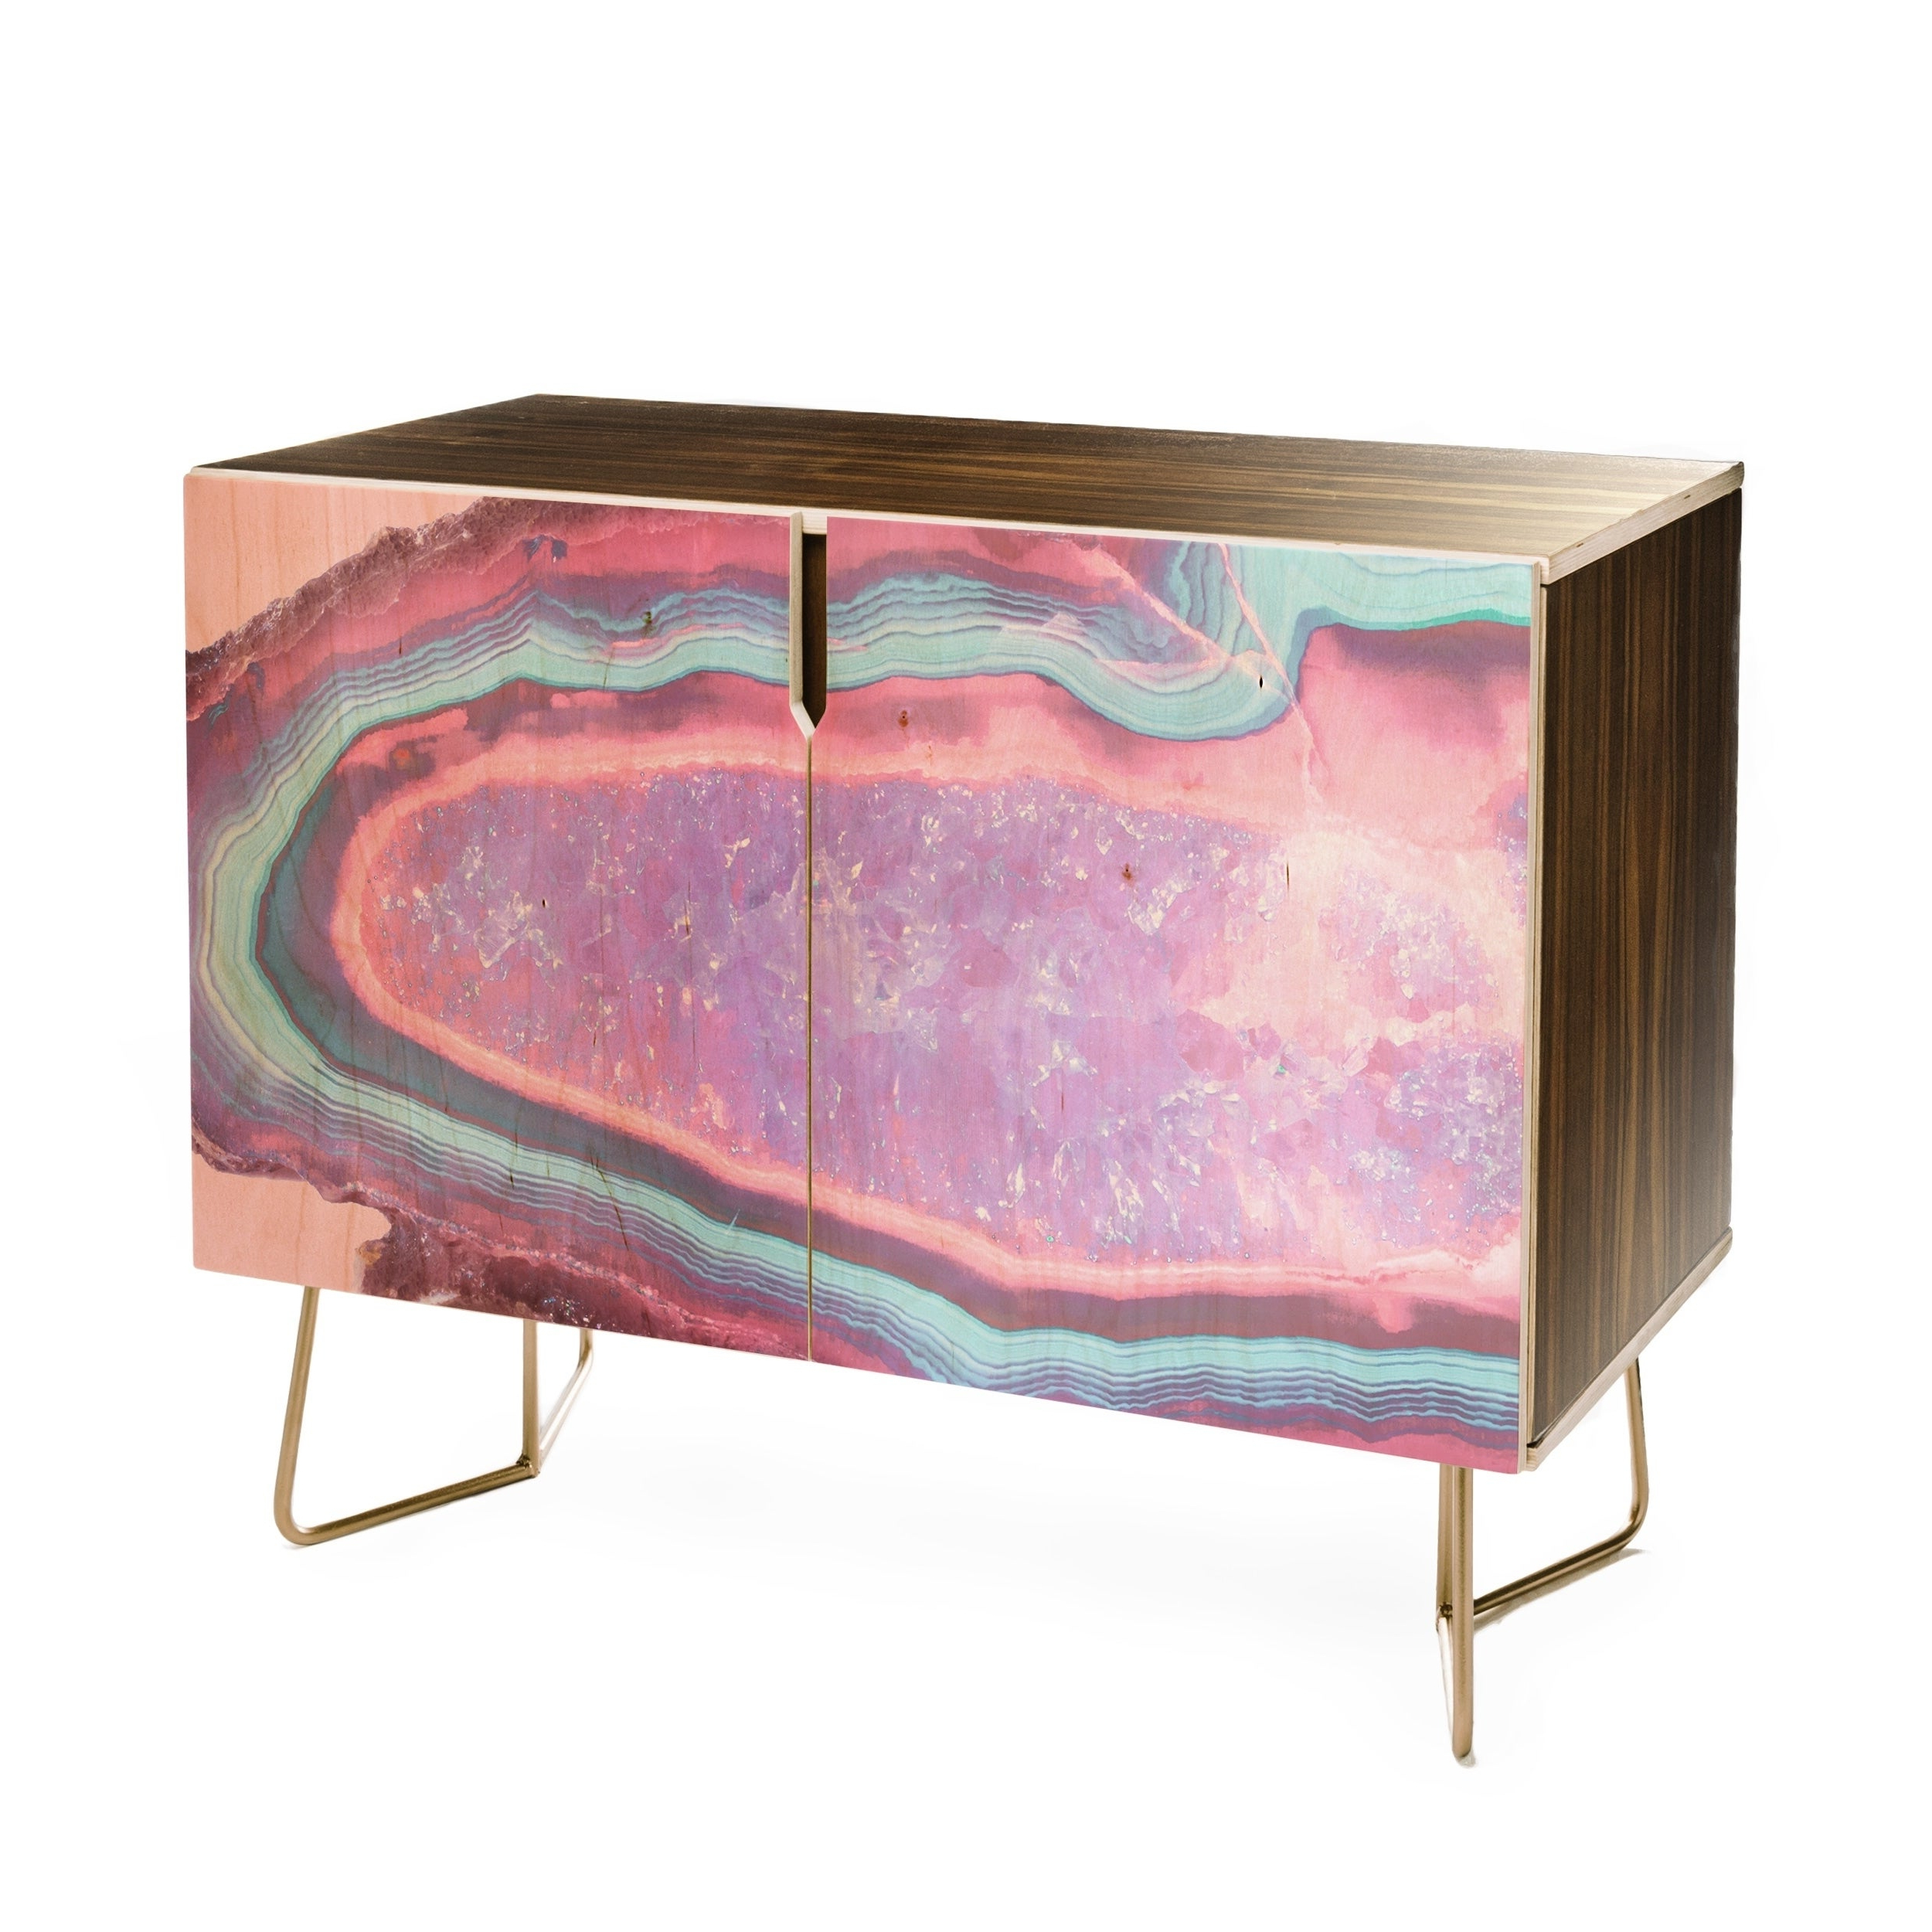 Emanuela Carratoni Serenity And Rose Agate With Amethyst Crystals Credenza With Pale Pink Agate Wood Credenzas (Gallery 8 of 20)